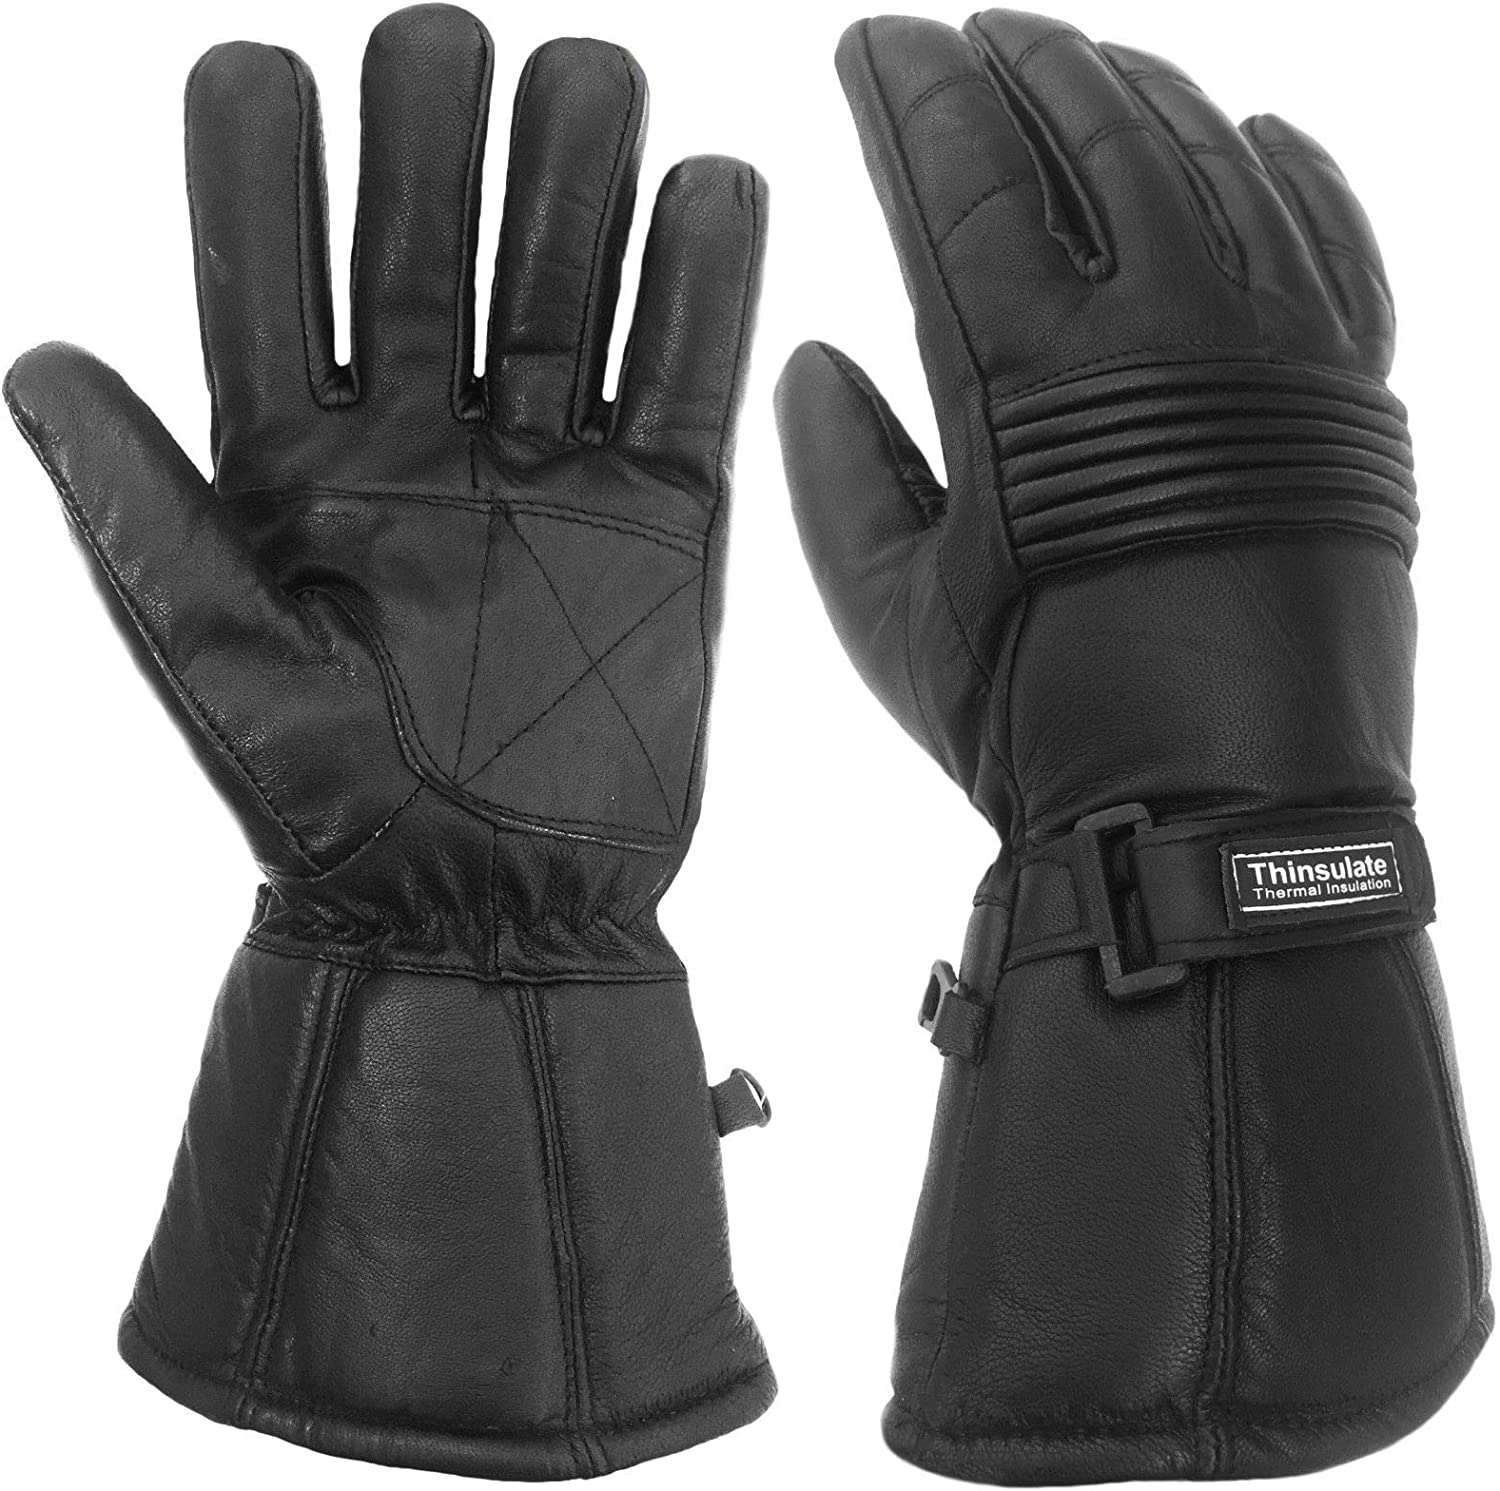 WFX Mens Winter Motorcycle Gloves Sheep Leather Waterproof with Hipora Thinsulate Thermal Windproof Medium